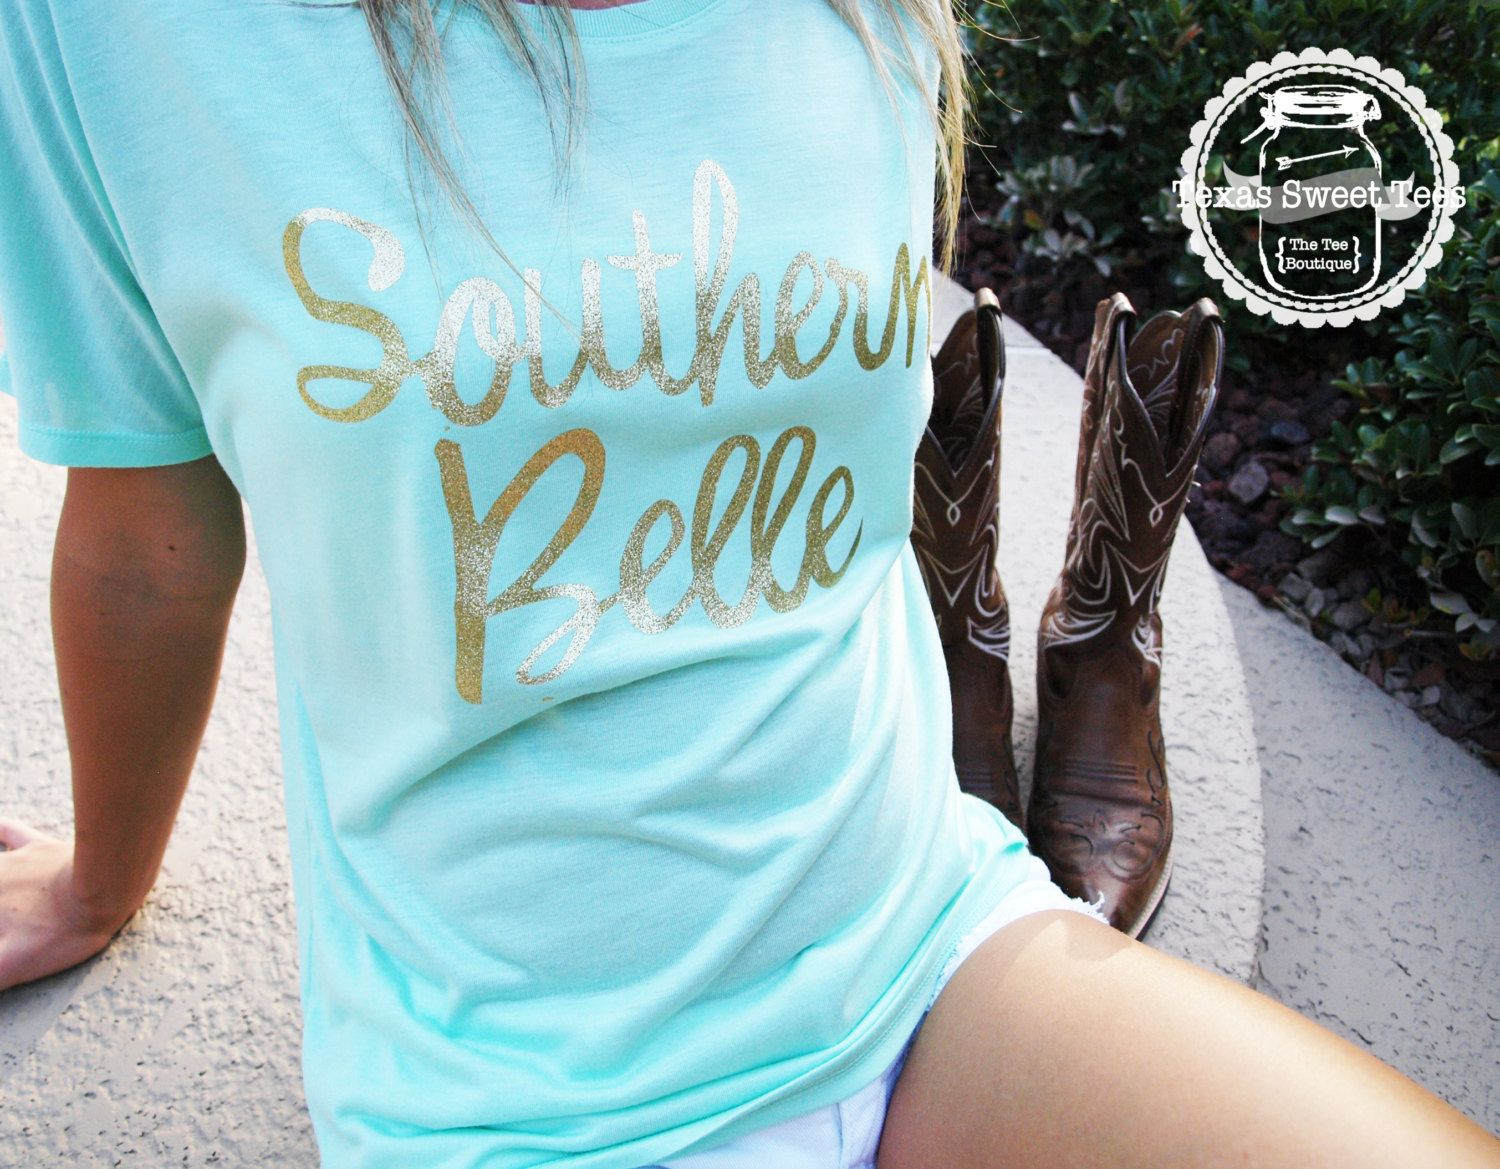 Southern Belle Glitter Comfy Tshirt by TexasSweetTees on Etsy https://www.etsy.com/listing/221425332/southern-belle-glitter-comfy-tshirt